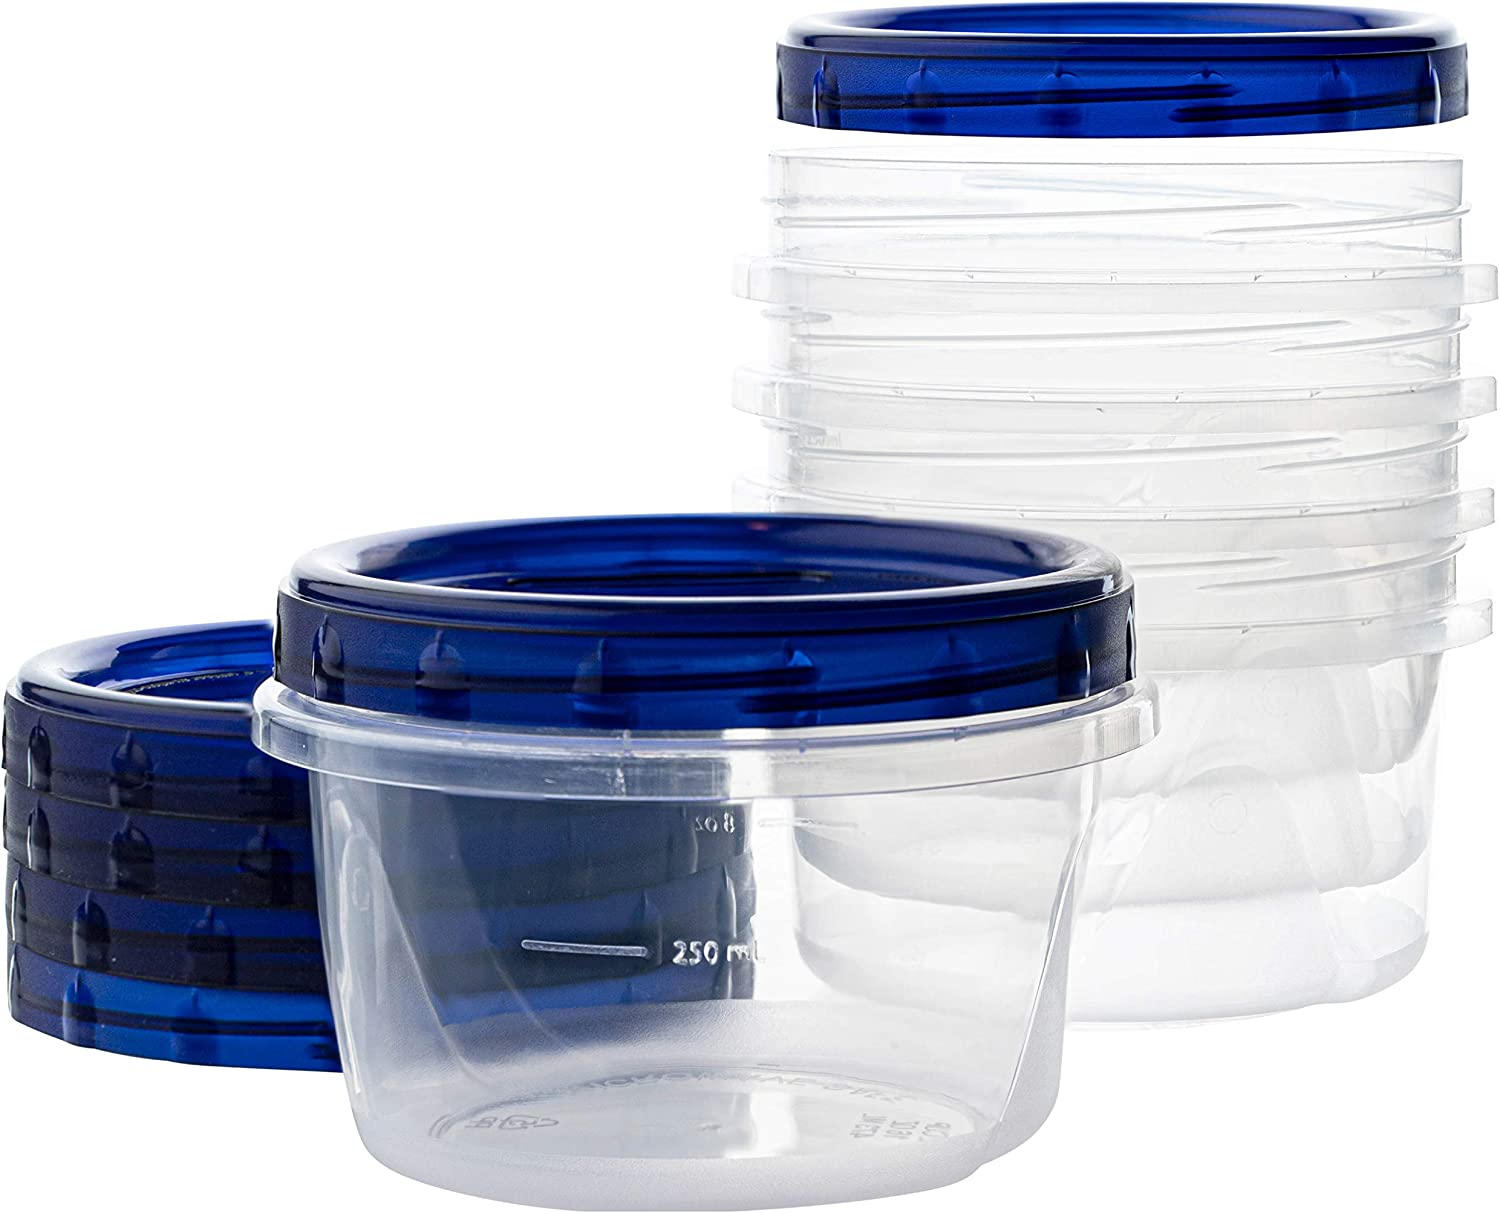 [16 oz 5 Pack] Twist Top Deli Containers Clear bottom With blue Top Twist on Lids Reusable, Stackable, Food Storage Freezer Container